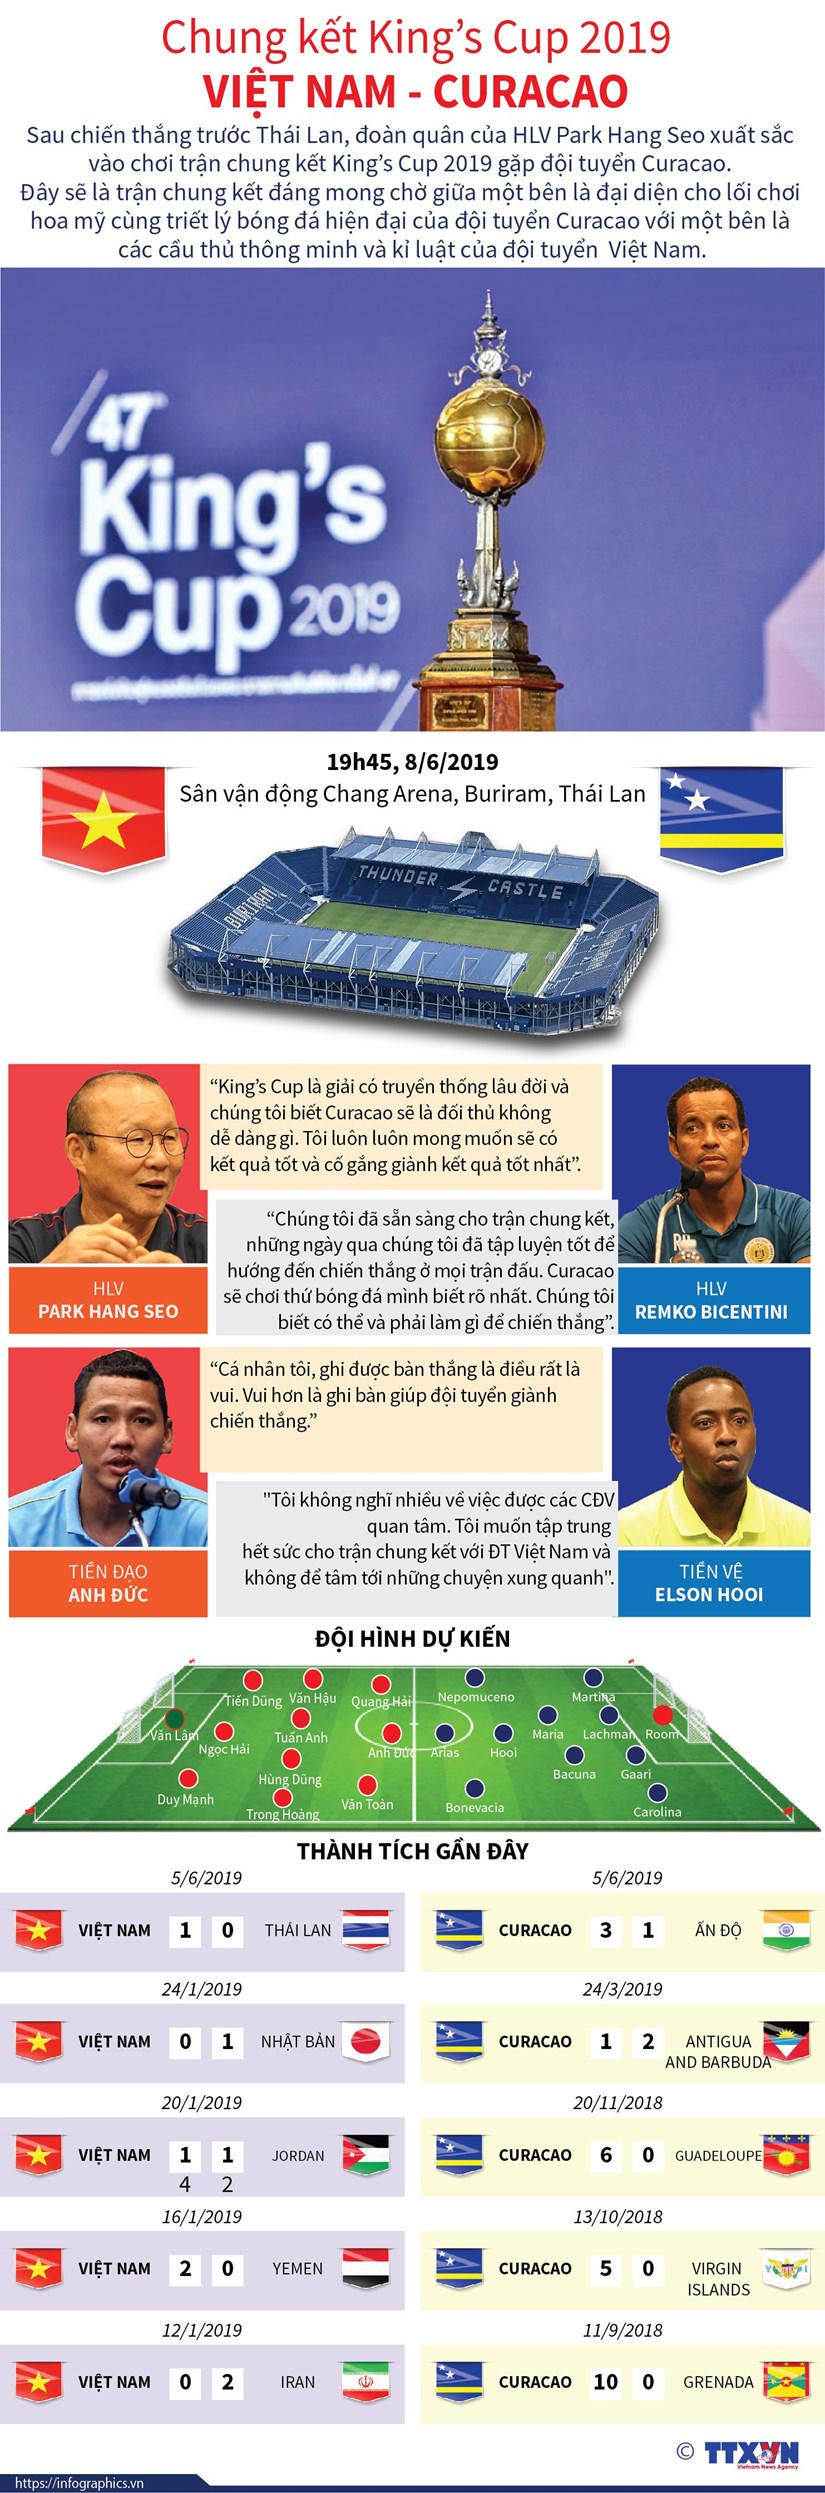 [Infographics] Chung ket King's Cup 2019 Viet Nam-Curacao hinh anh 1